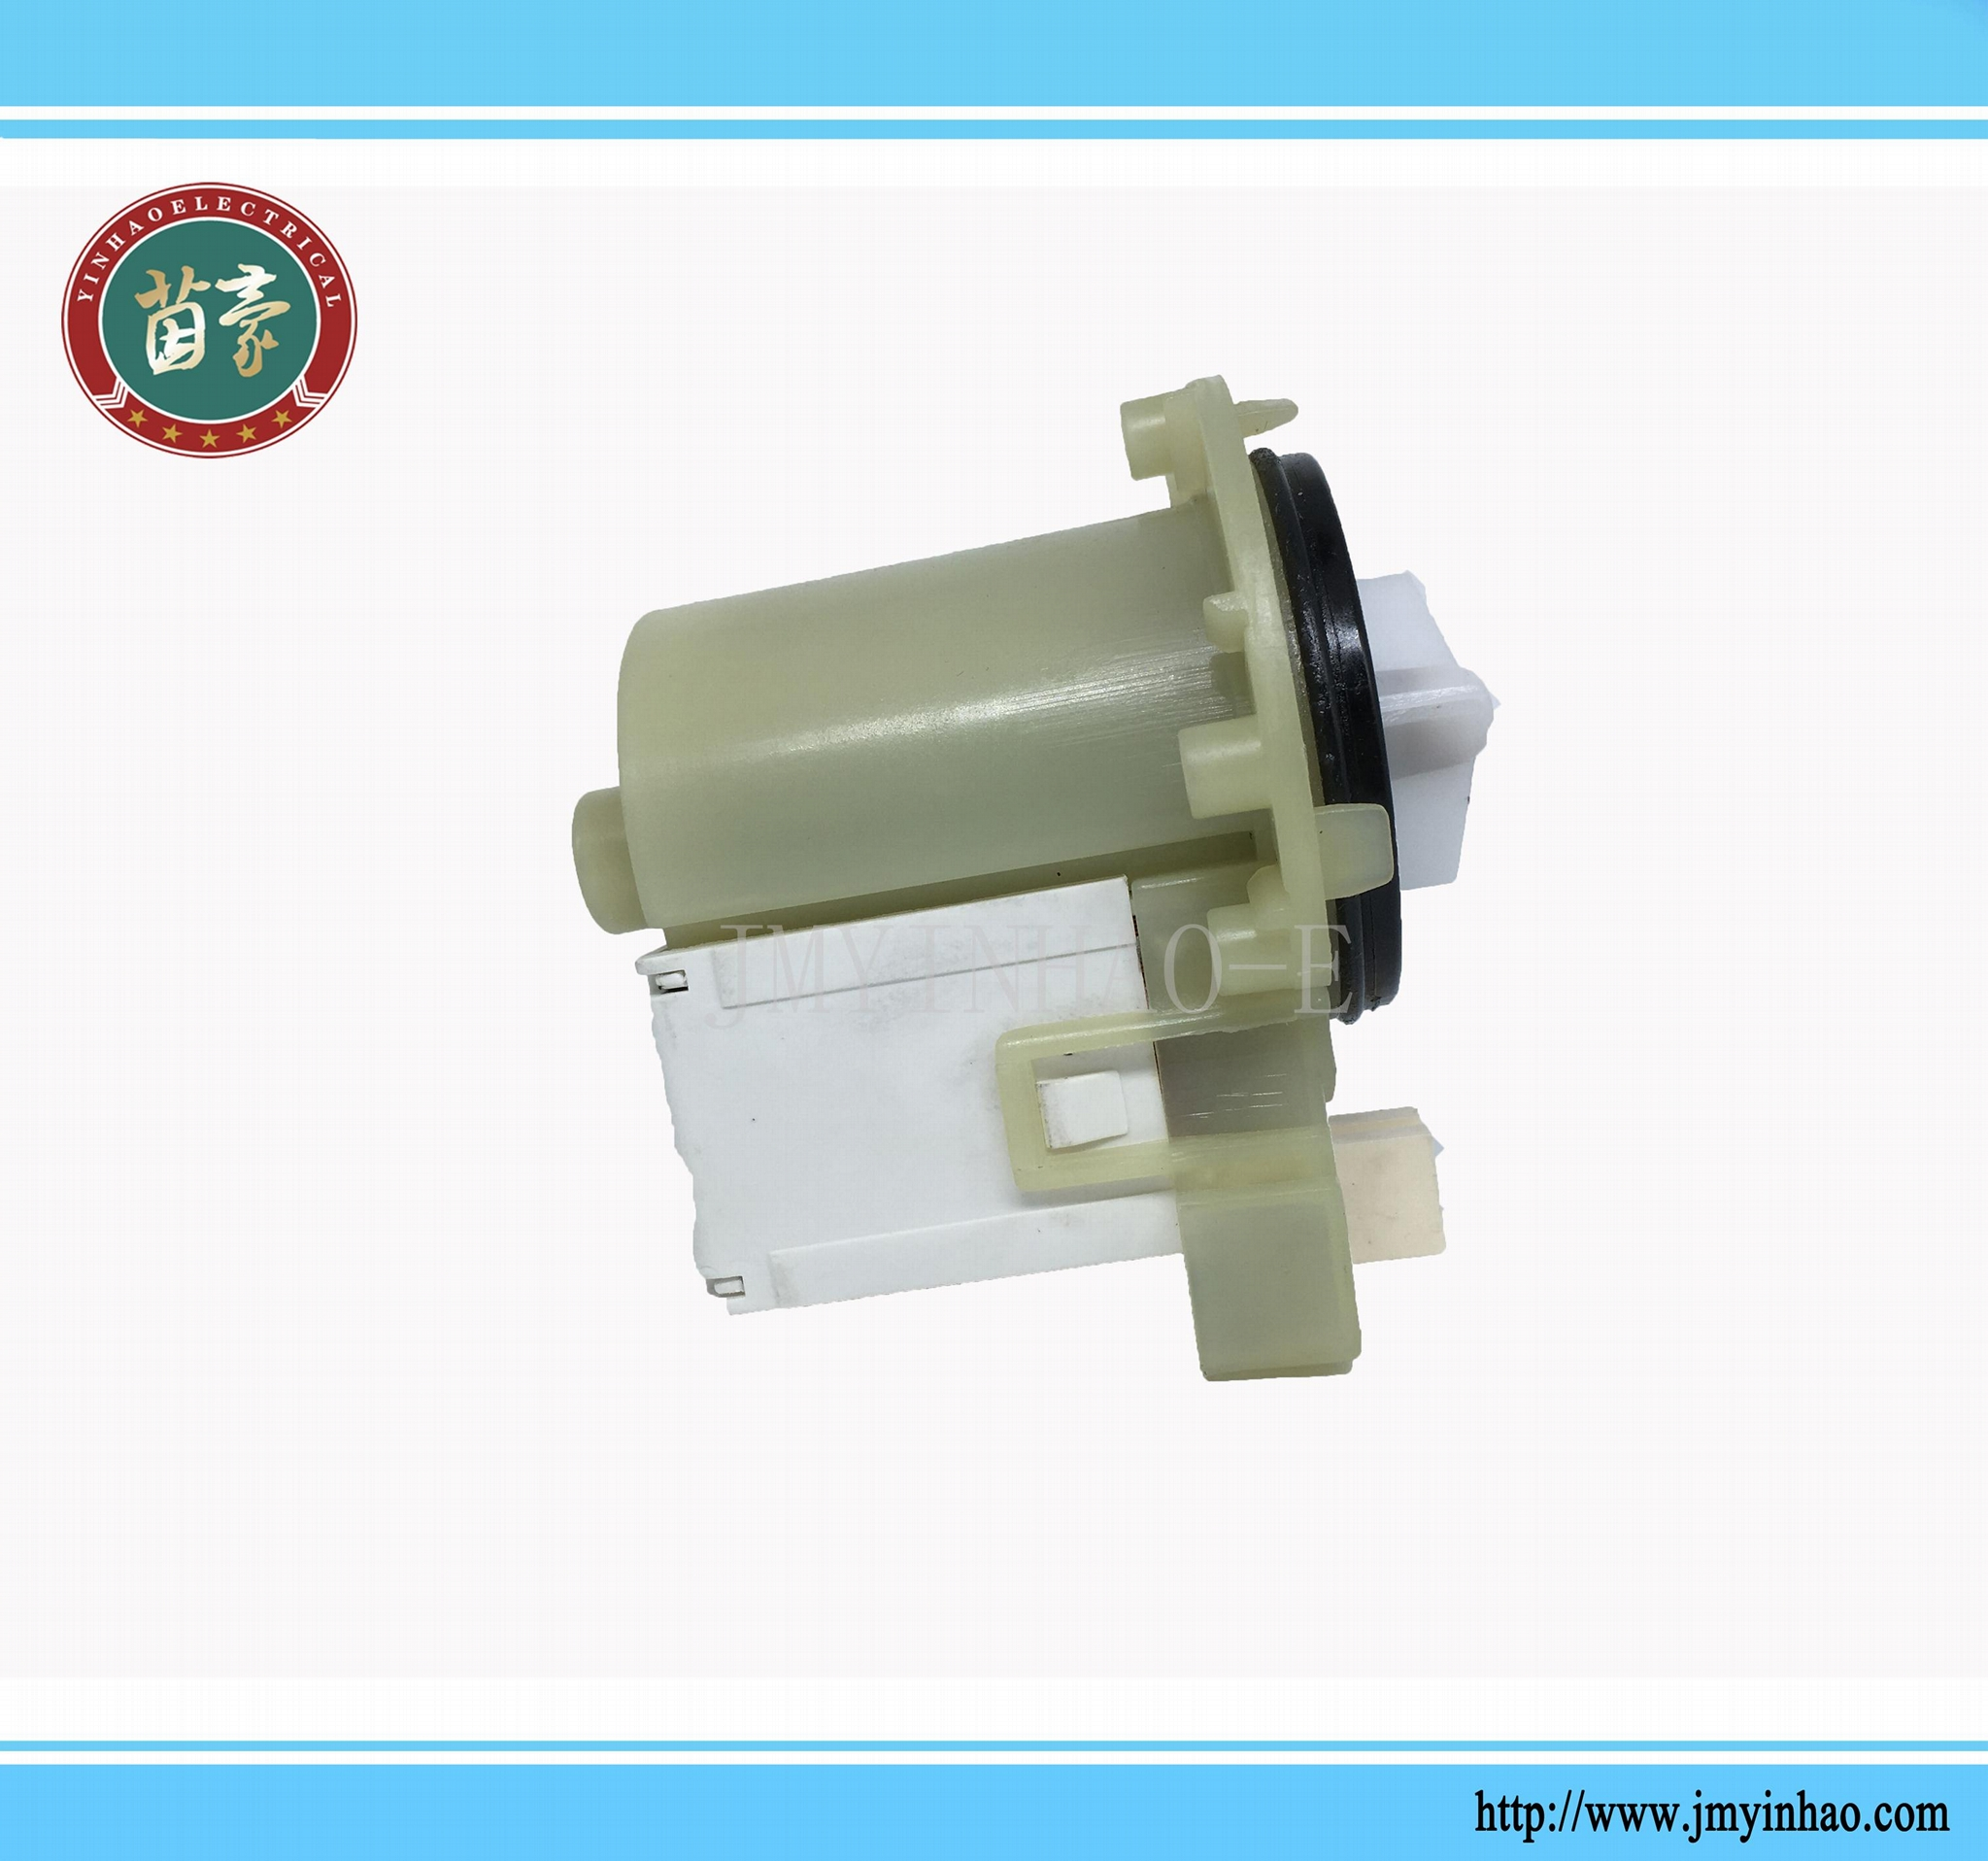 DC31-00054A Washer Drain Pump for Samsung PS4204638 AP4202690 Washing Machine